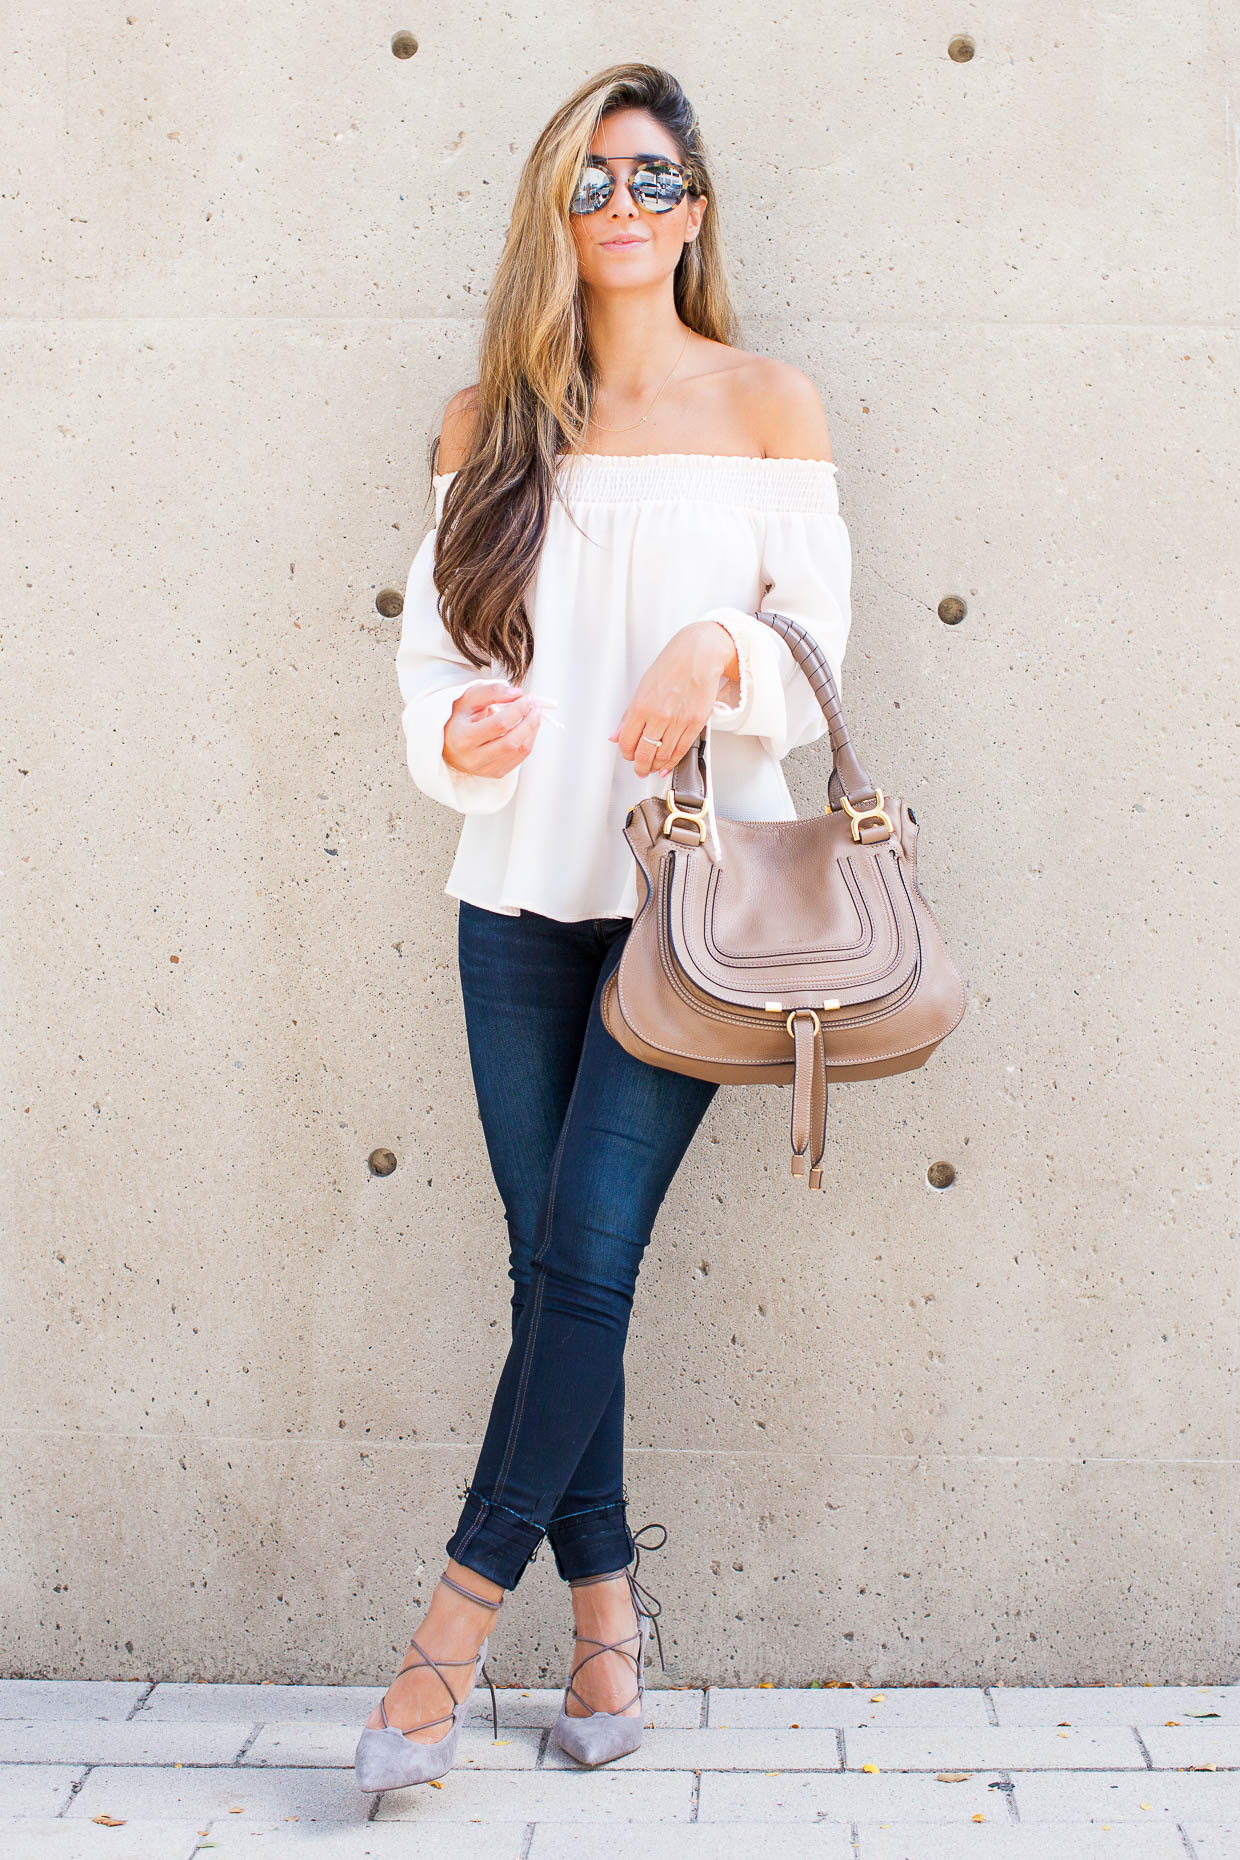 fe78921037a7 Fashion Blogger The Darling Detail is wearing a Chelsea28 Off the Shoulder  Top and rag ...